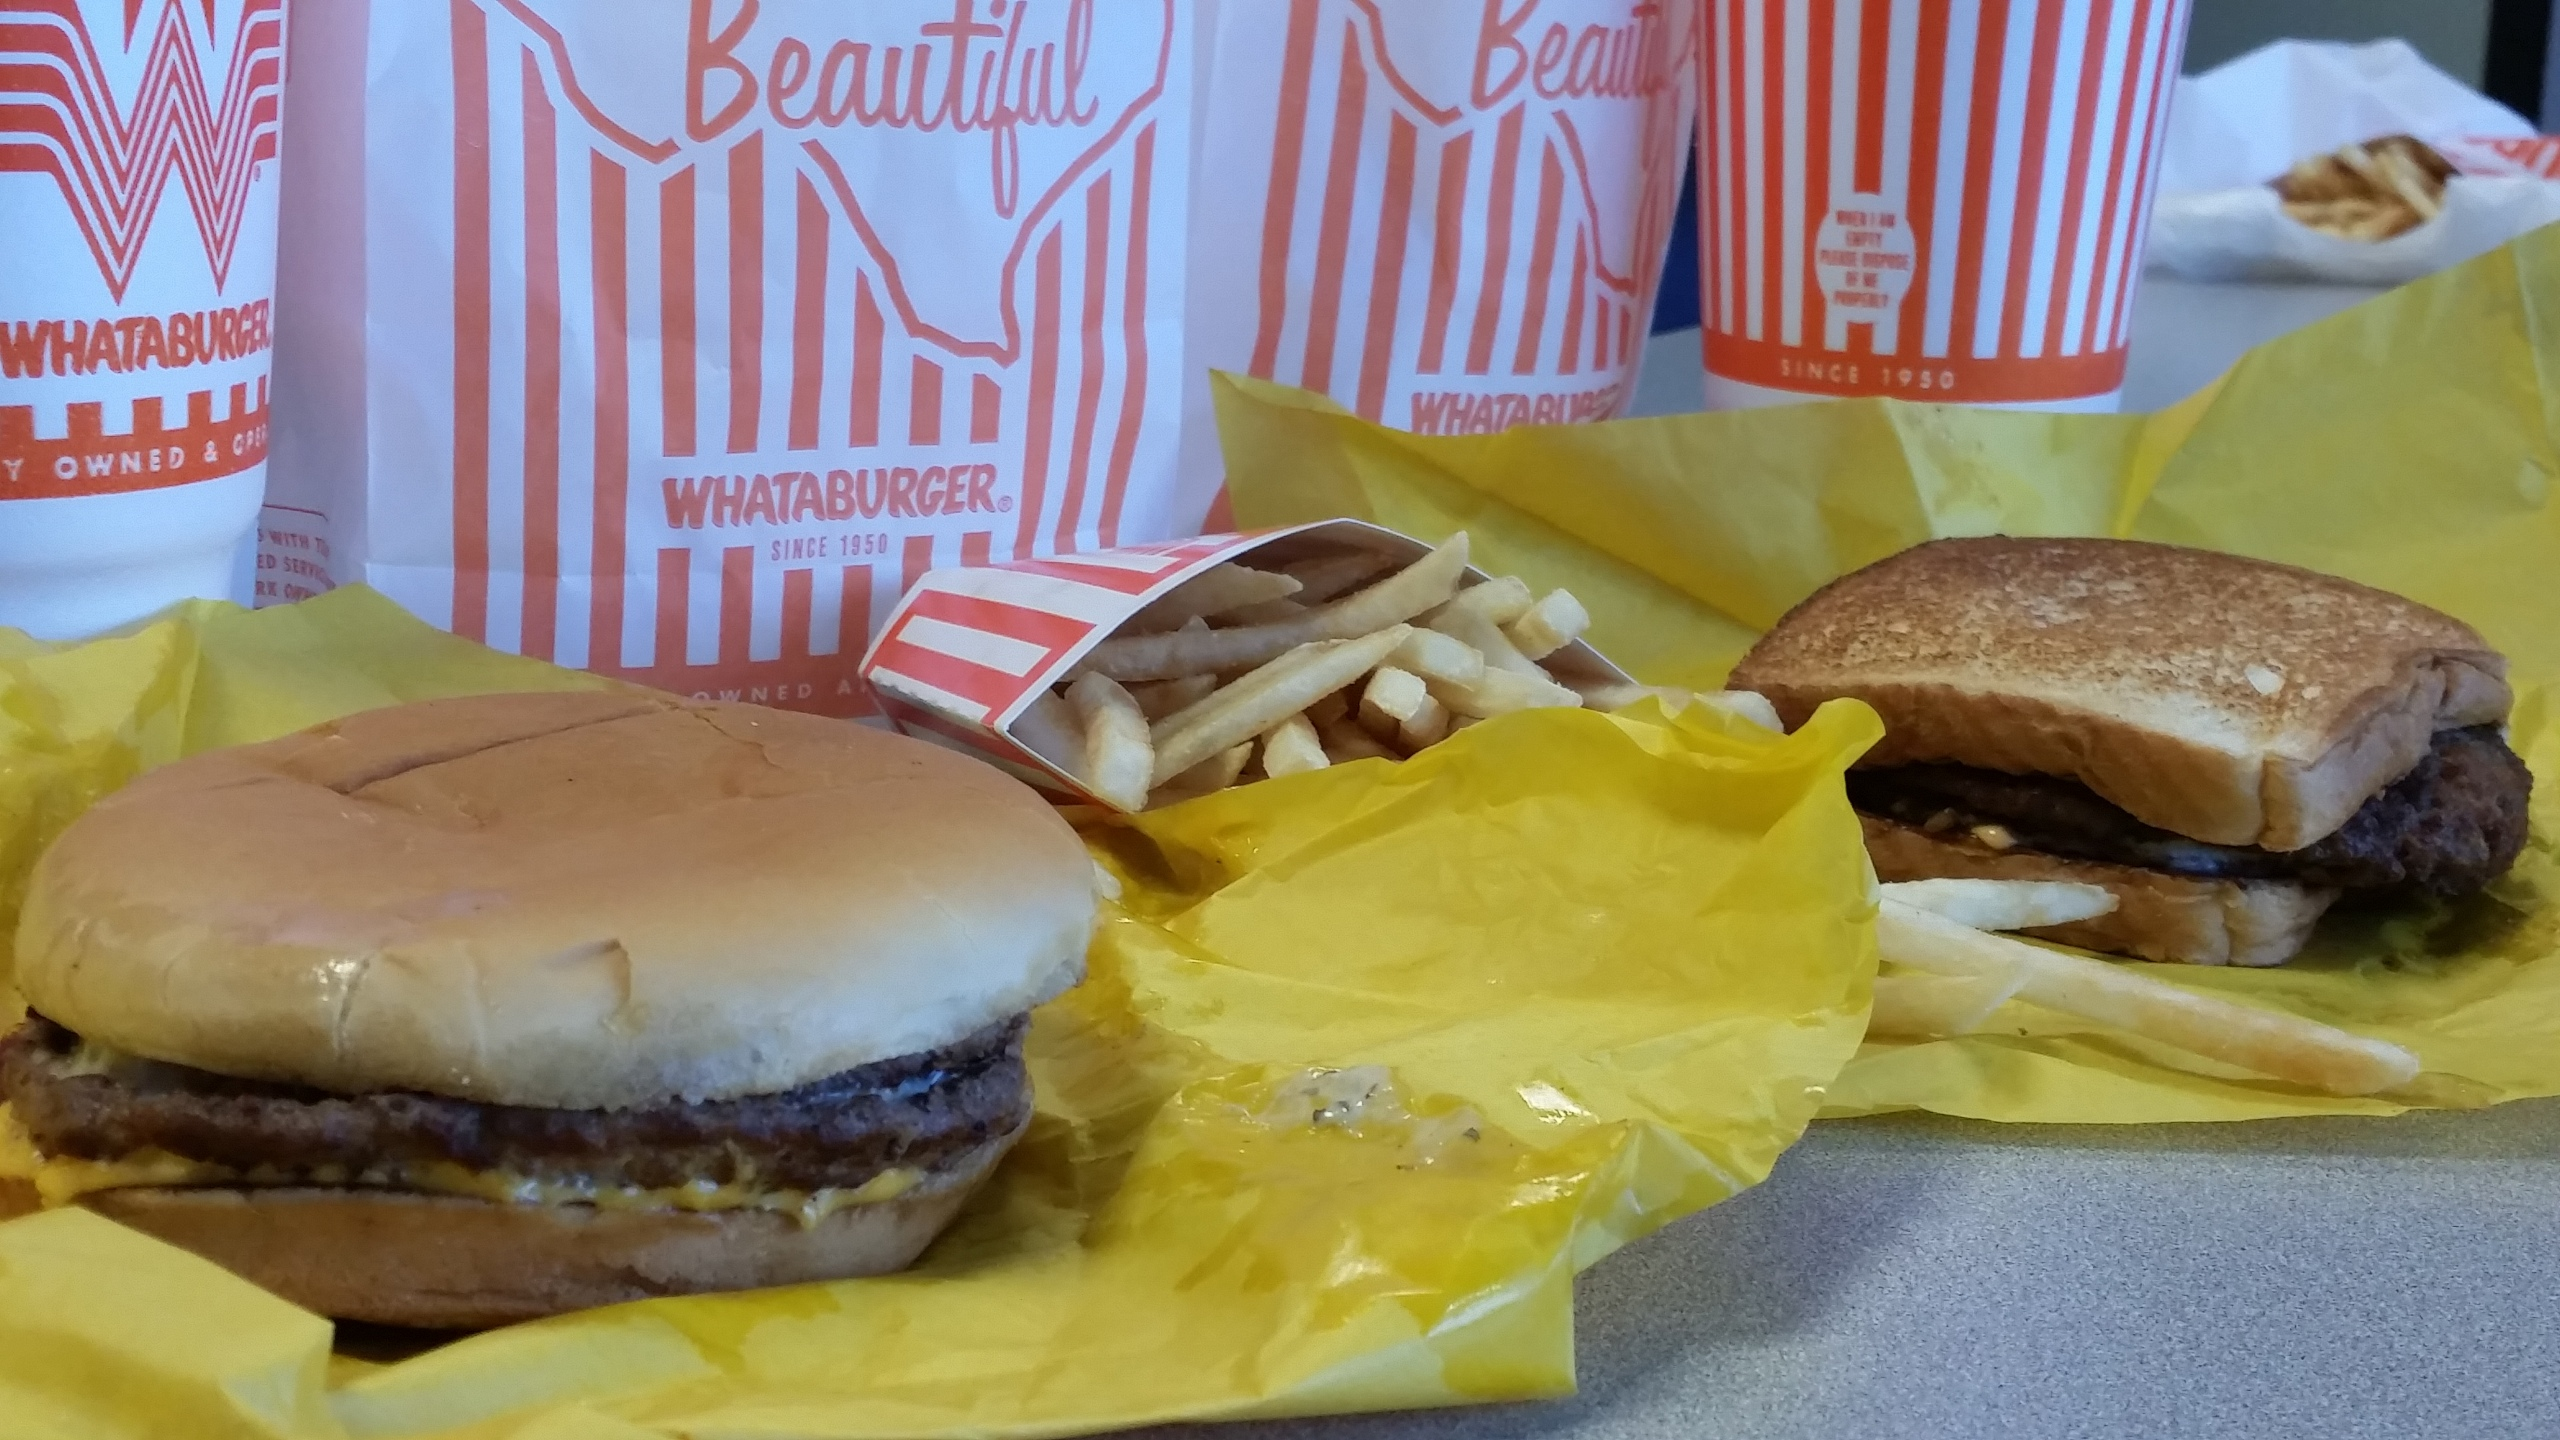 Whataburger burger, french fries and Texas Toast-846655081